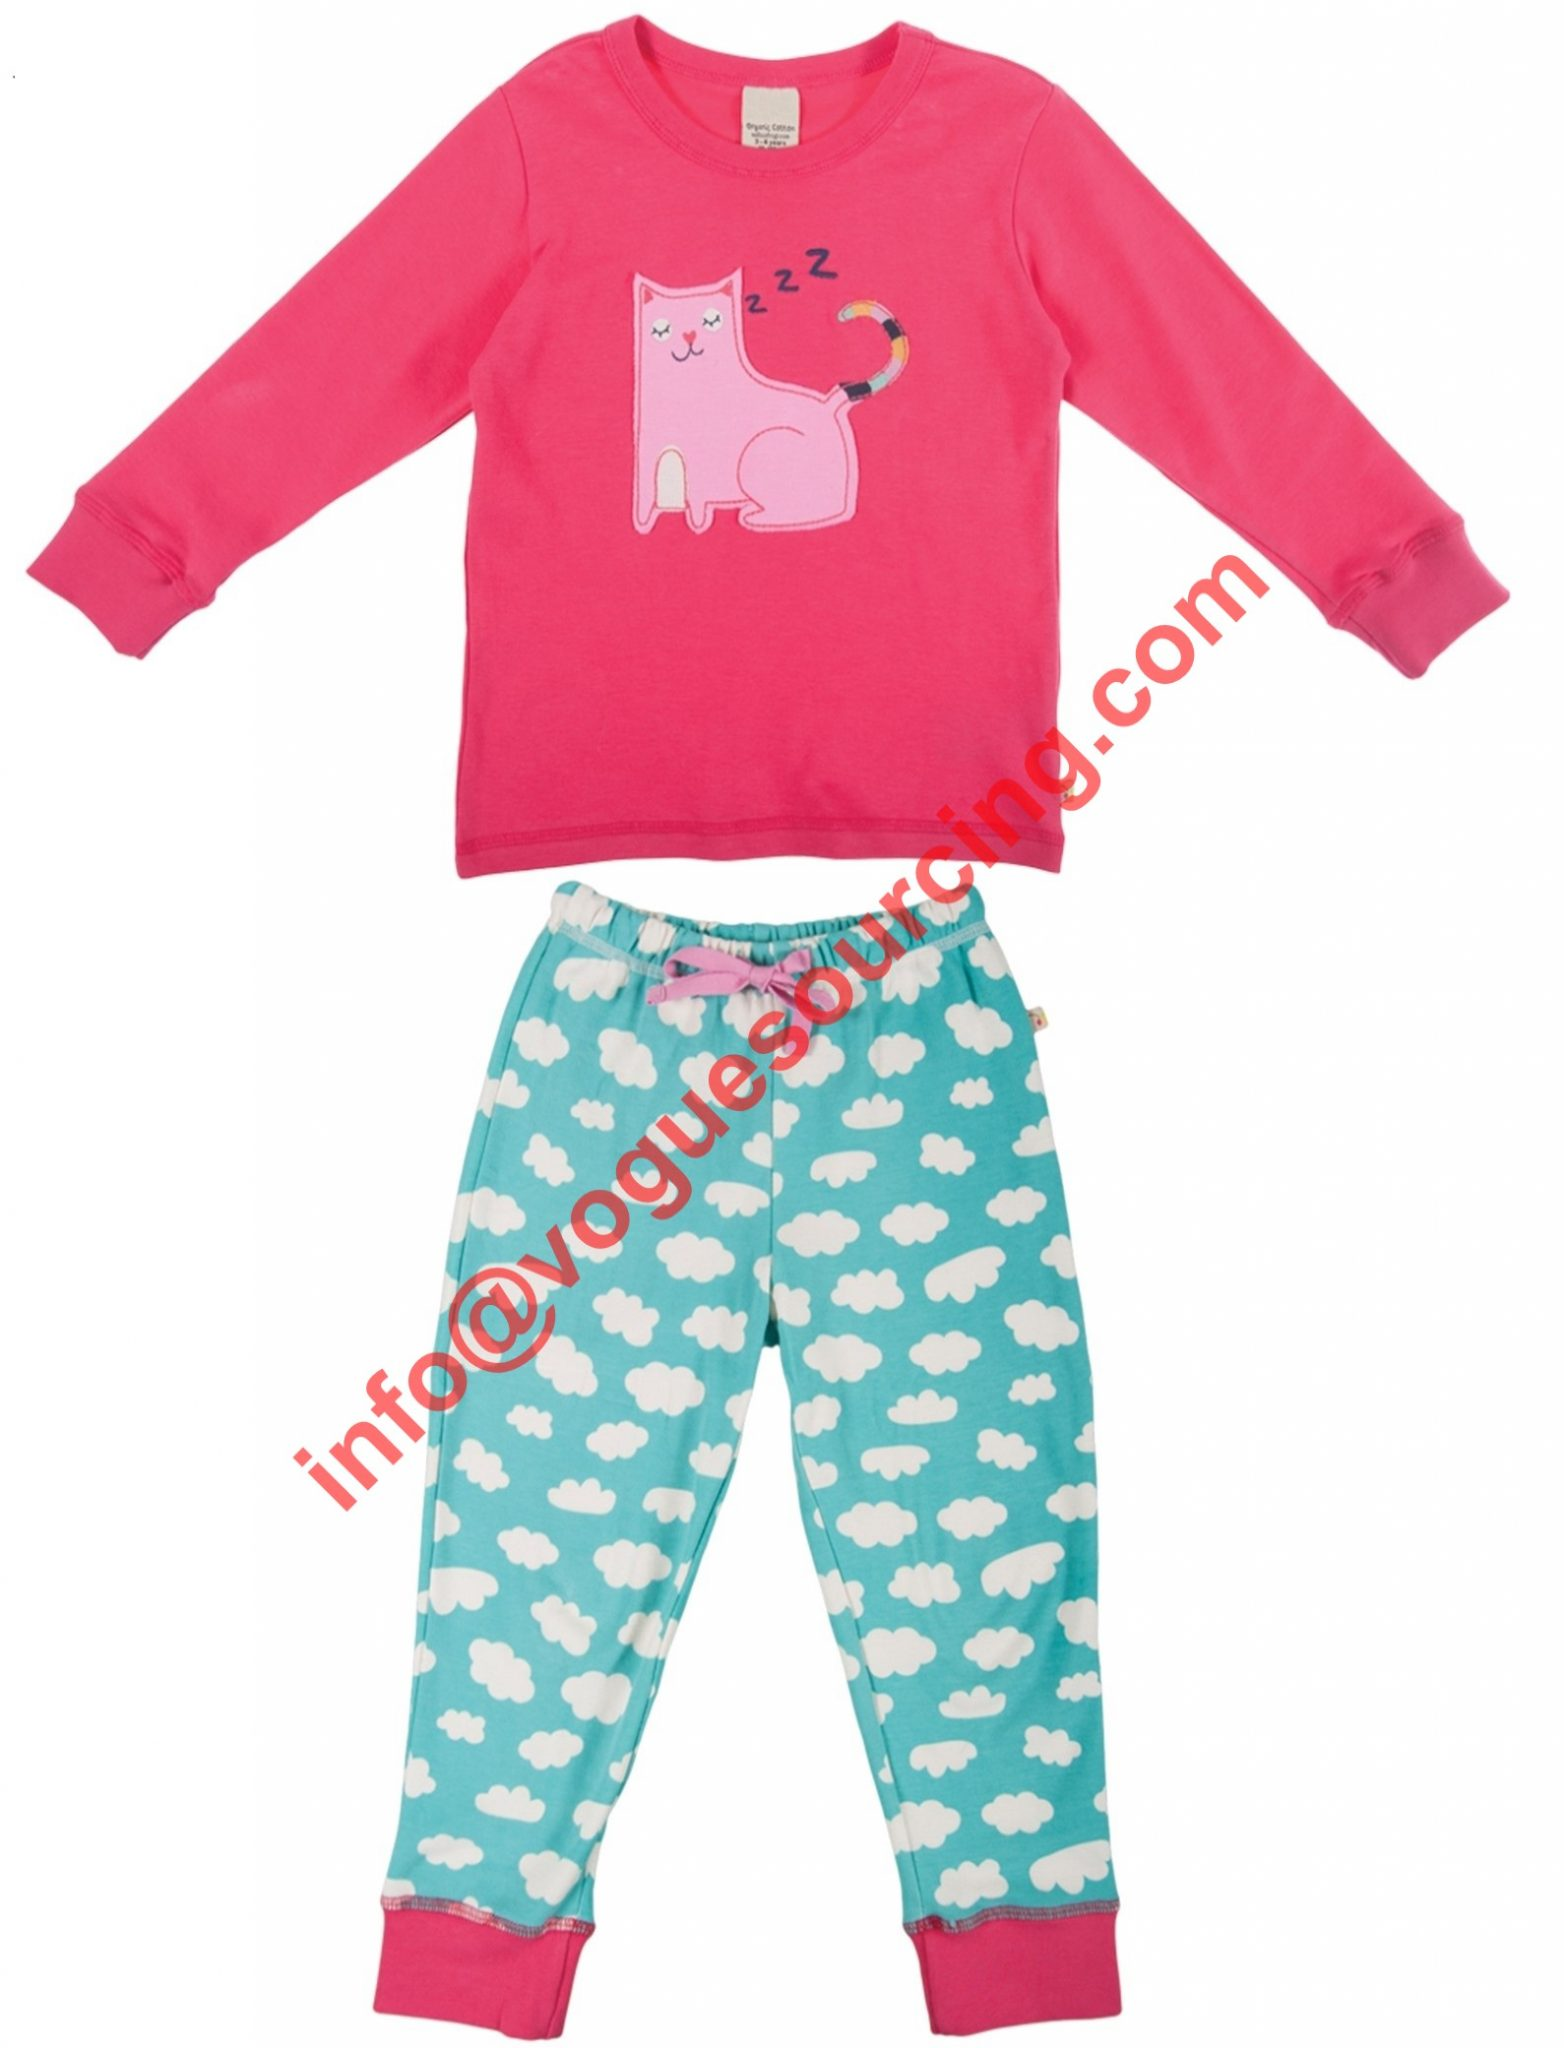 Girls Nightwear Manufacturers in Tirupur India UK Europe USA Canada